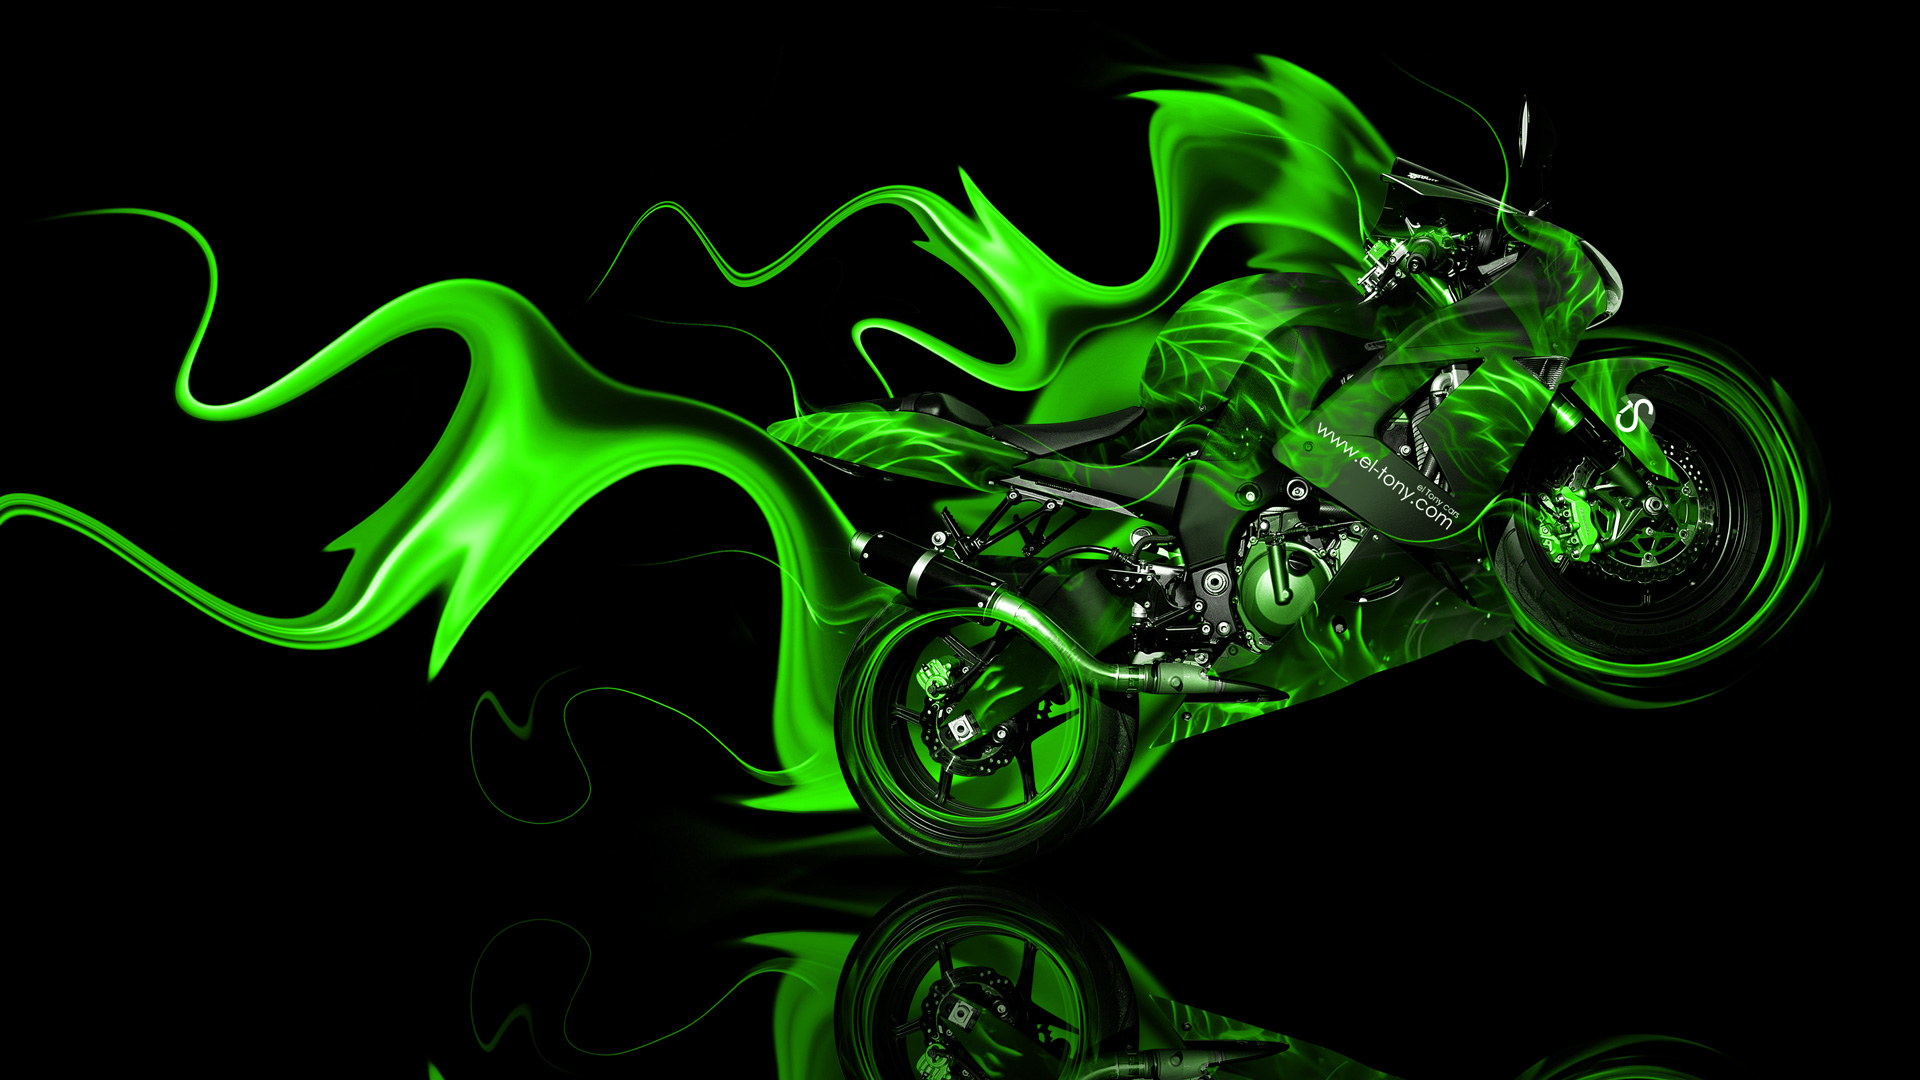 1000 Images About Groen Als Gras On Pinterest Kawasaki Zx6r Rembrandt And Pond Animals